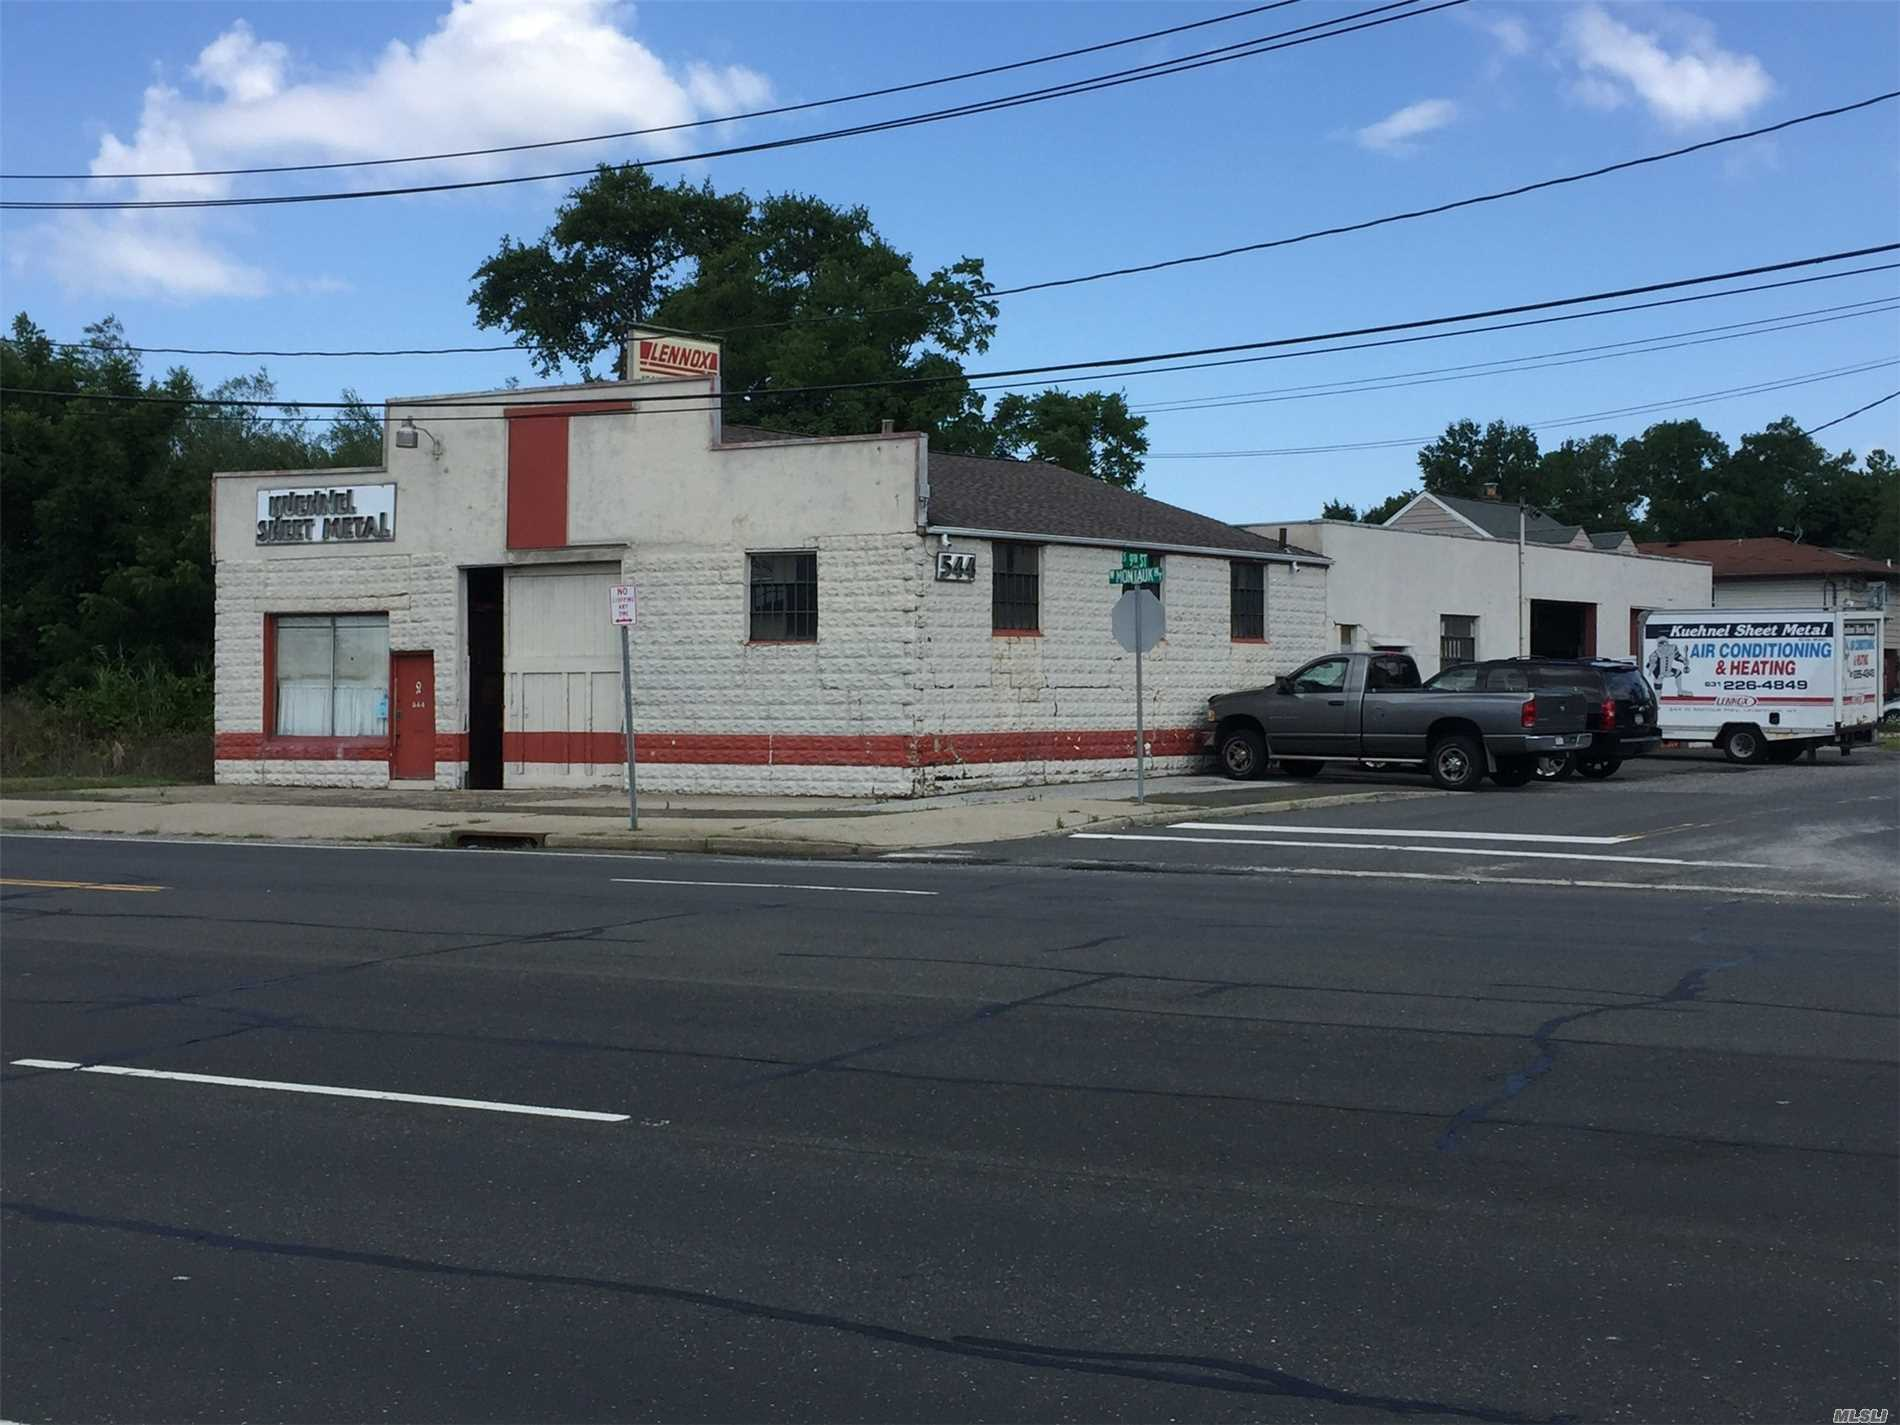 Great Corner Property And Building Right On Montauk Hwy. Extreme Visibility With Very High Traffic Counts. Commercial Business Zone. Was A Sheet Metal Shop. Has Two Bay Doors With High Ceilings. 10 Car Parking. Perfect For Any Type Of Shop Or Warehouse Use. Can Be Office Building Or Retail Store.